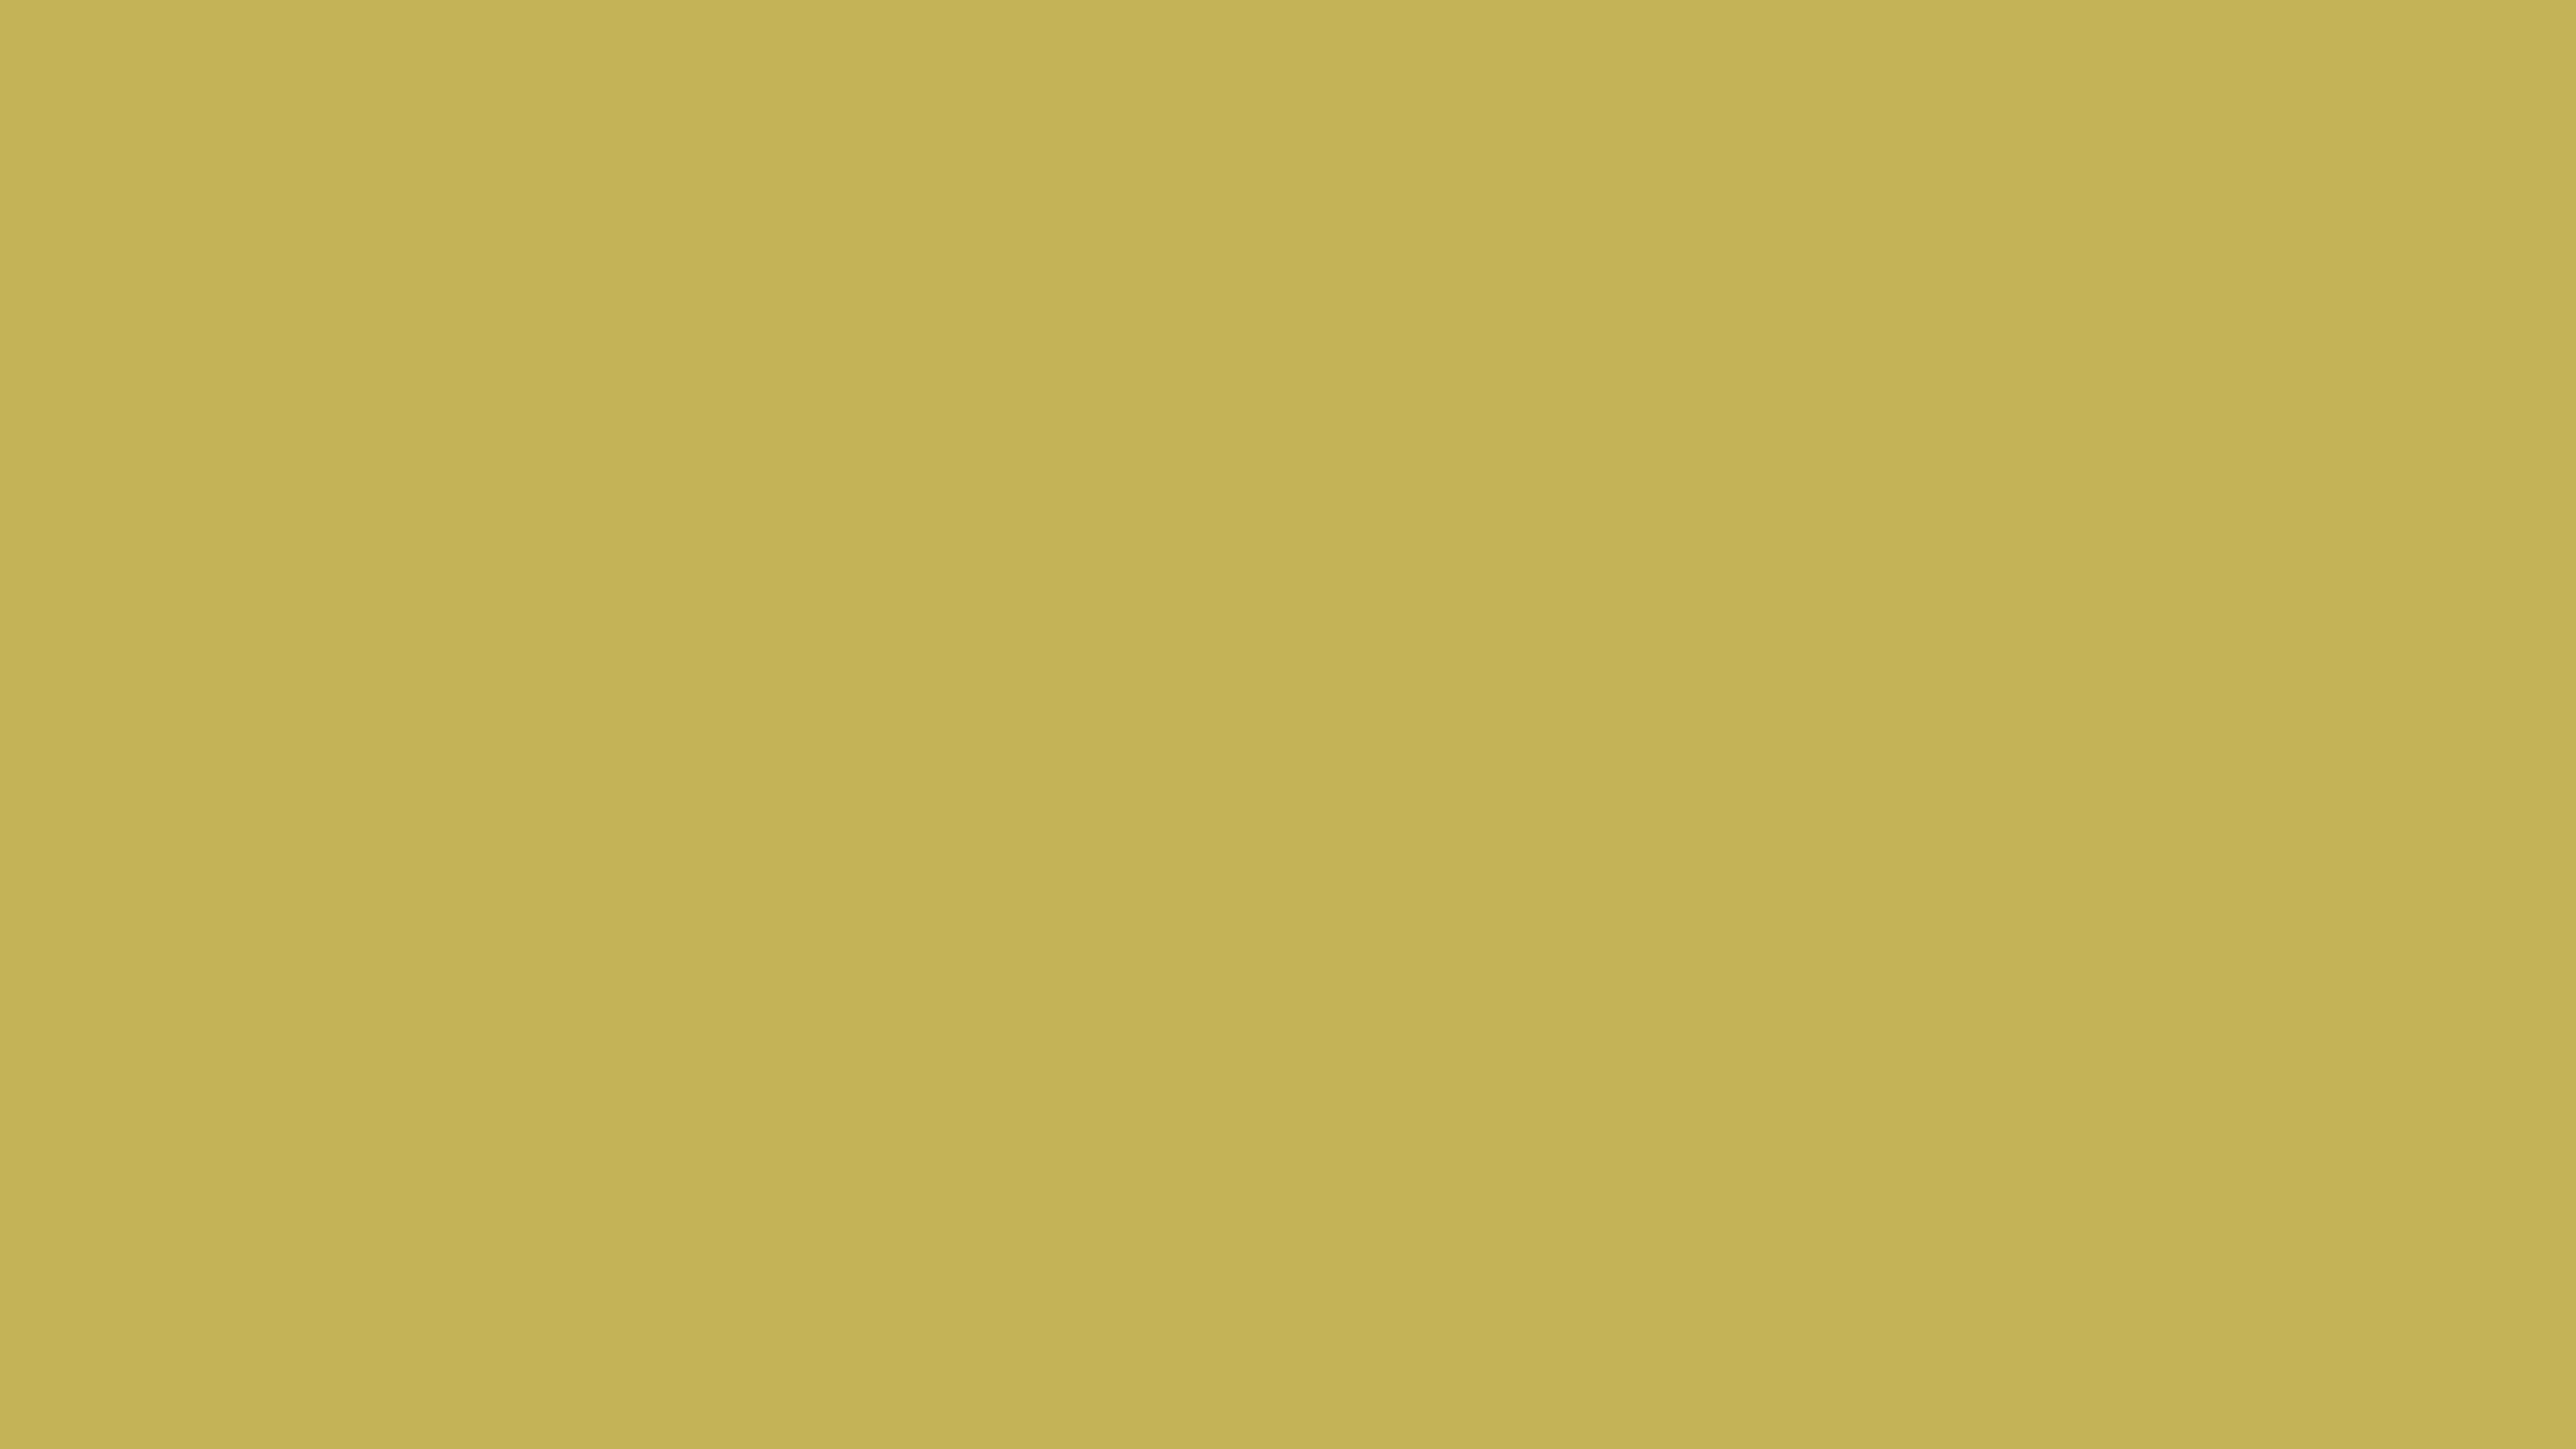 7680x4320 Vegas Gold Solid Color Background